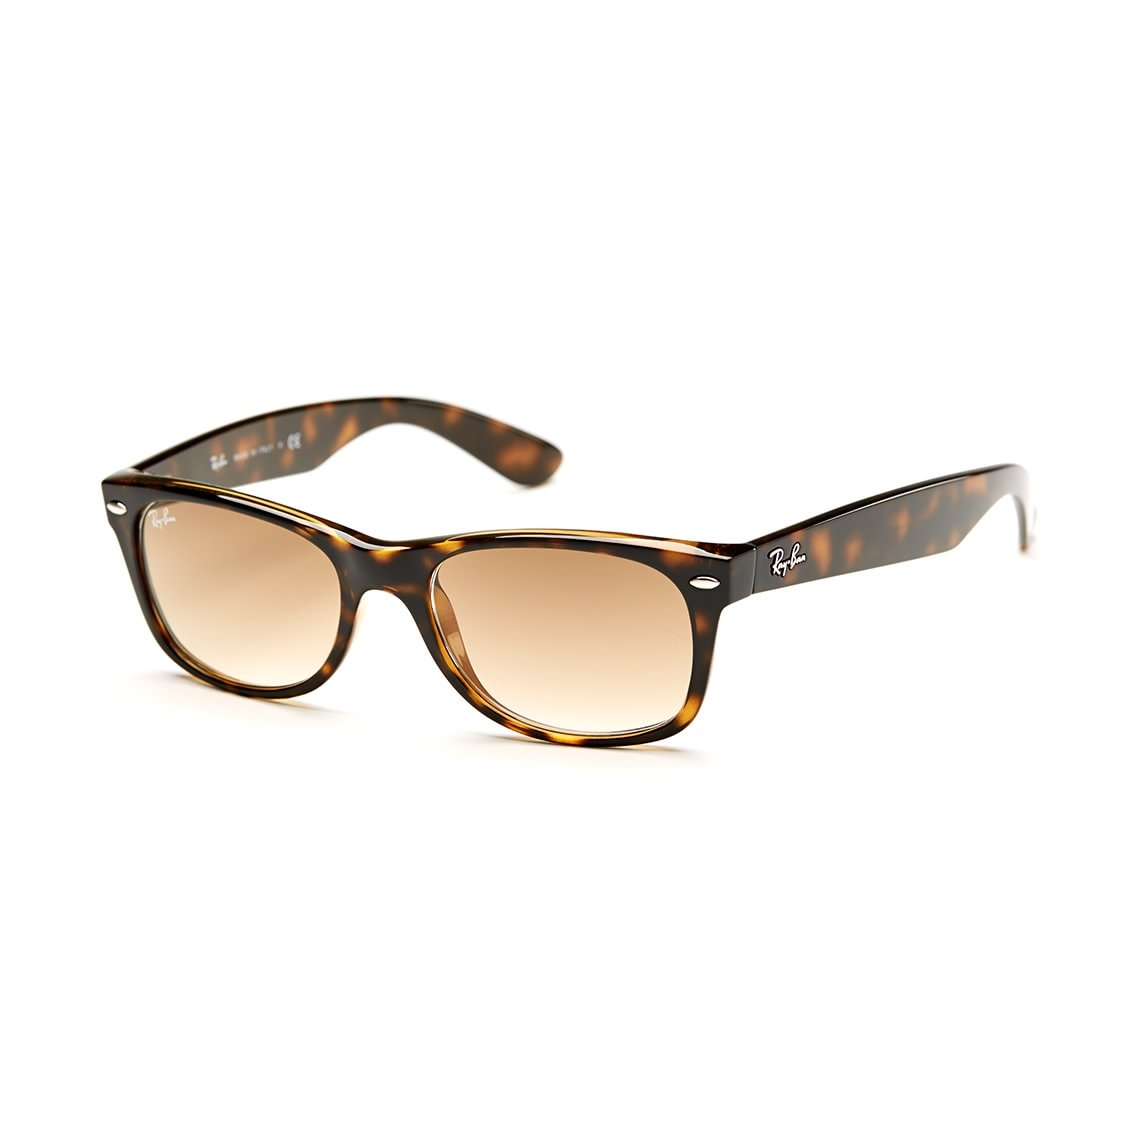 Ray-Ban New Wayfarer RB2132 710/51 52